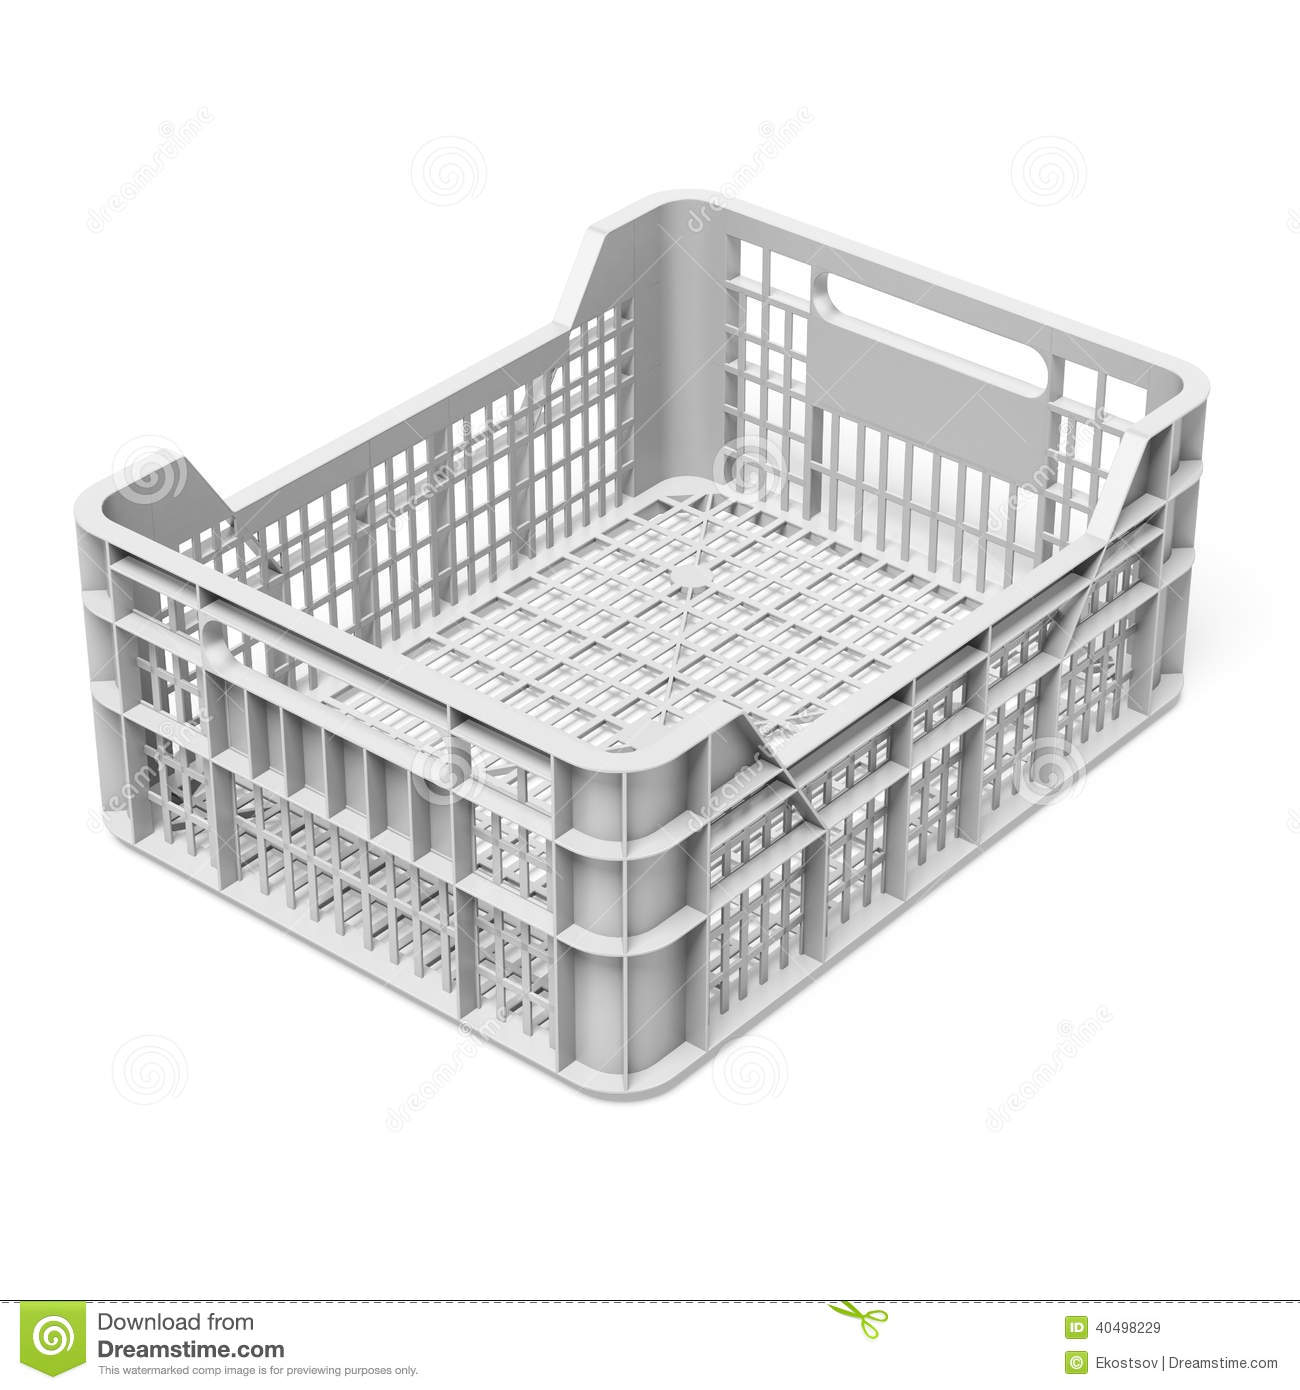 Caisse blanche vide illustration stock image 40498229 for Prix d un conteneur vide